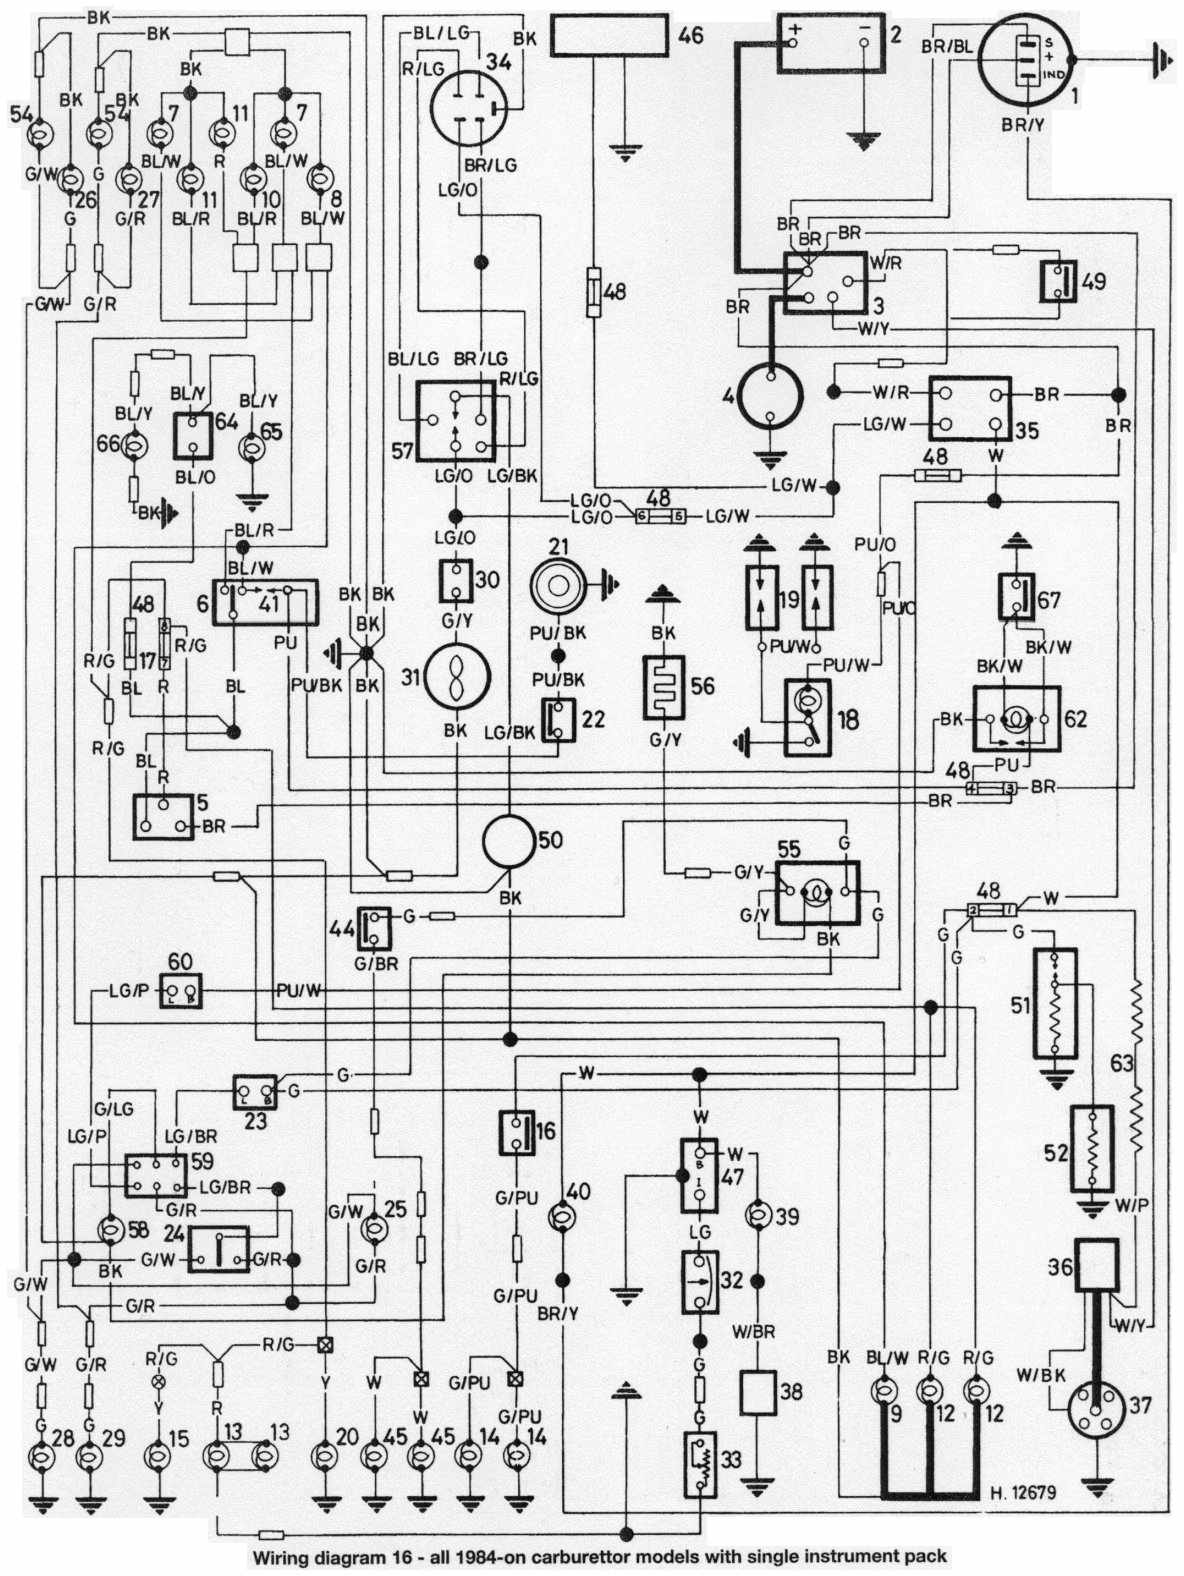 hight resolution of 1985 austin mini wiring diagram wiring diagram fuse box in daewoo matiz